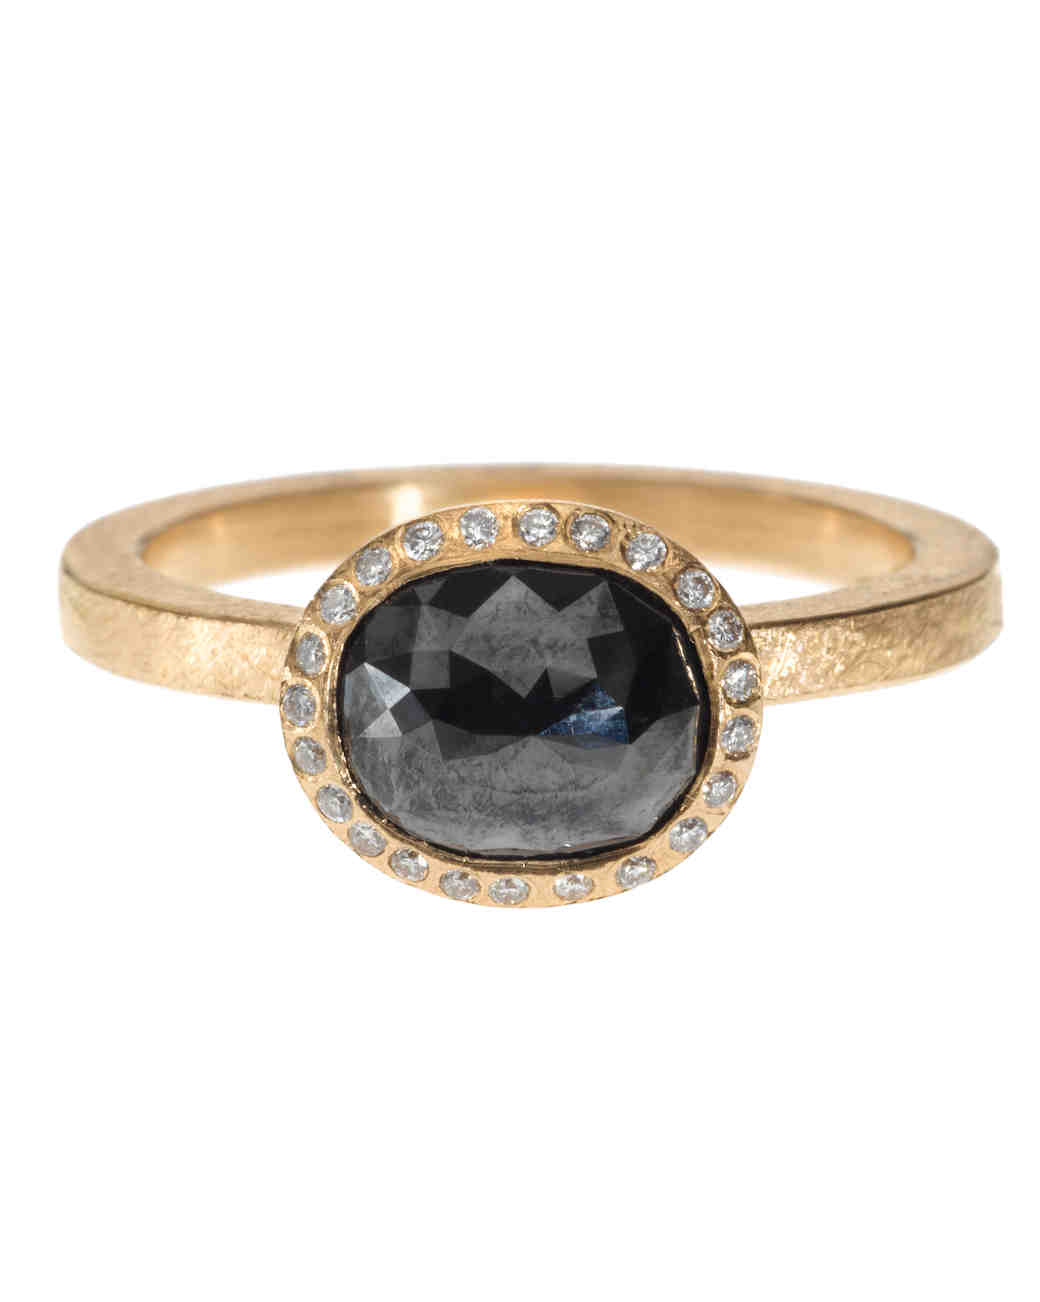 The New Lbd The Little Black Diamond Engagement Ring